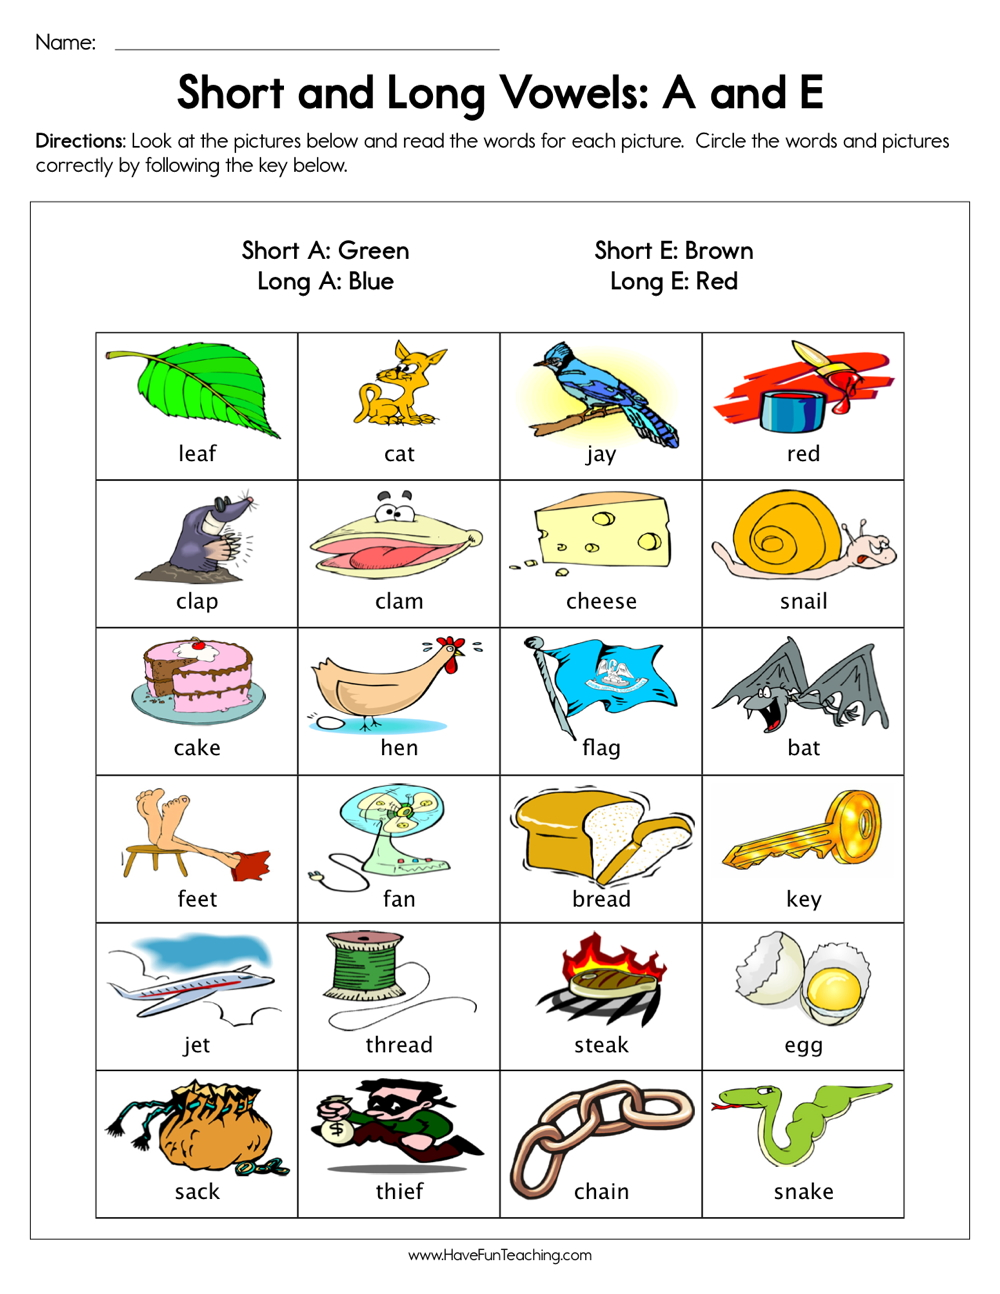 medium resolution of Short and Long Vowels A and E Worksheet • Have Fun Teaching